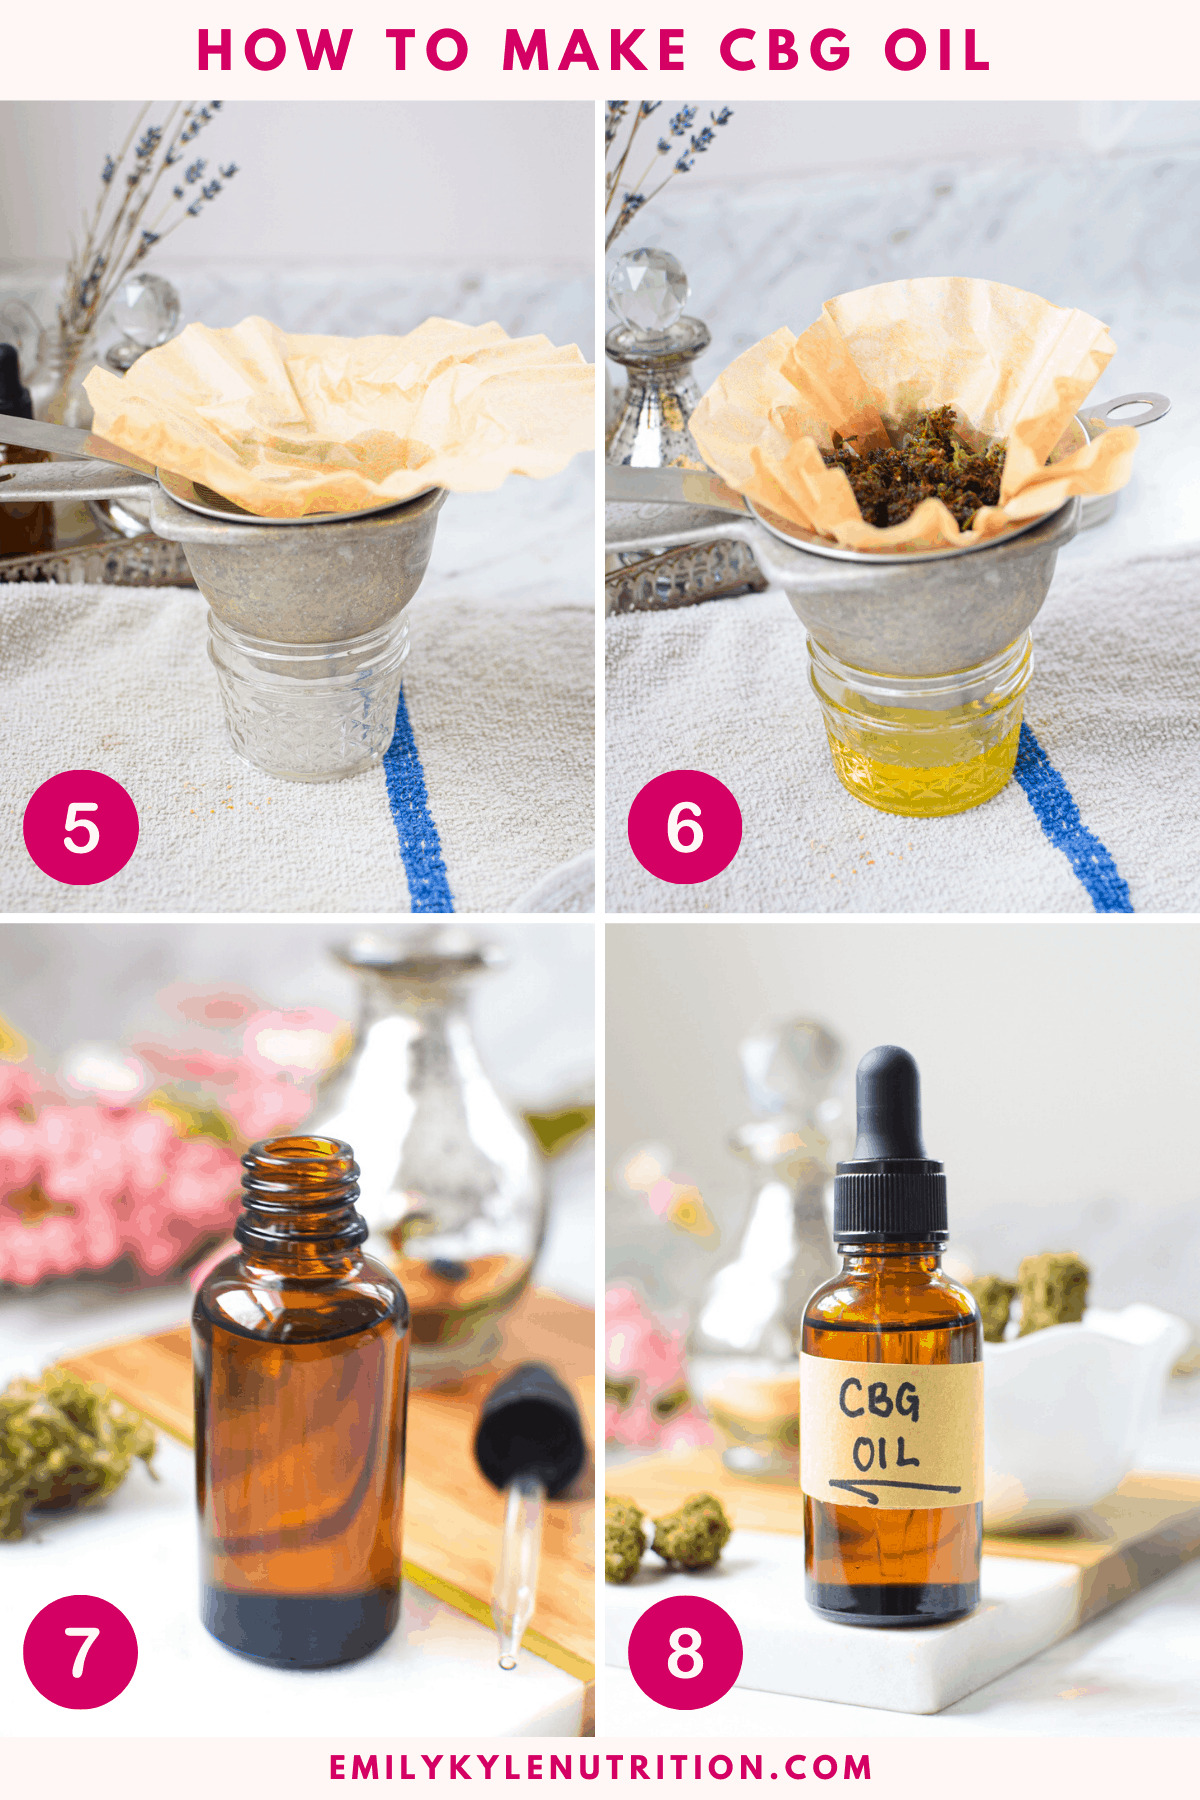 4 Step Collage Showing Image For How to Make CBG Oil